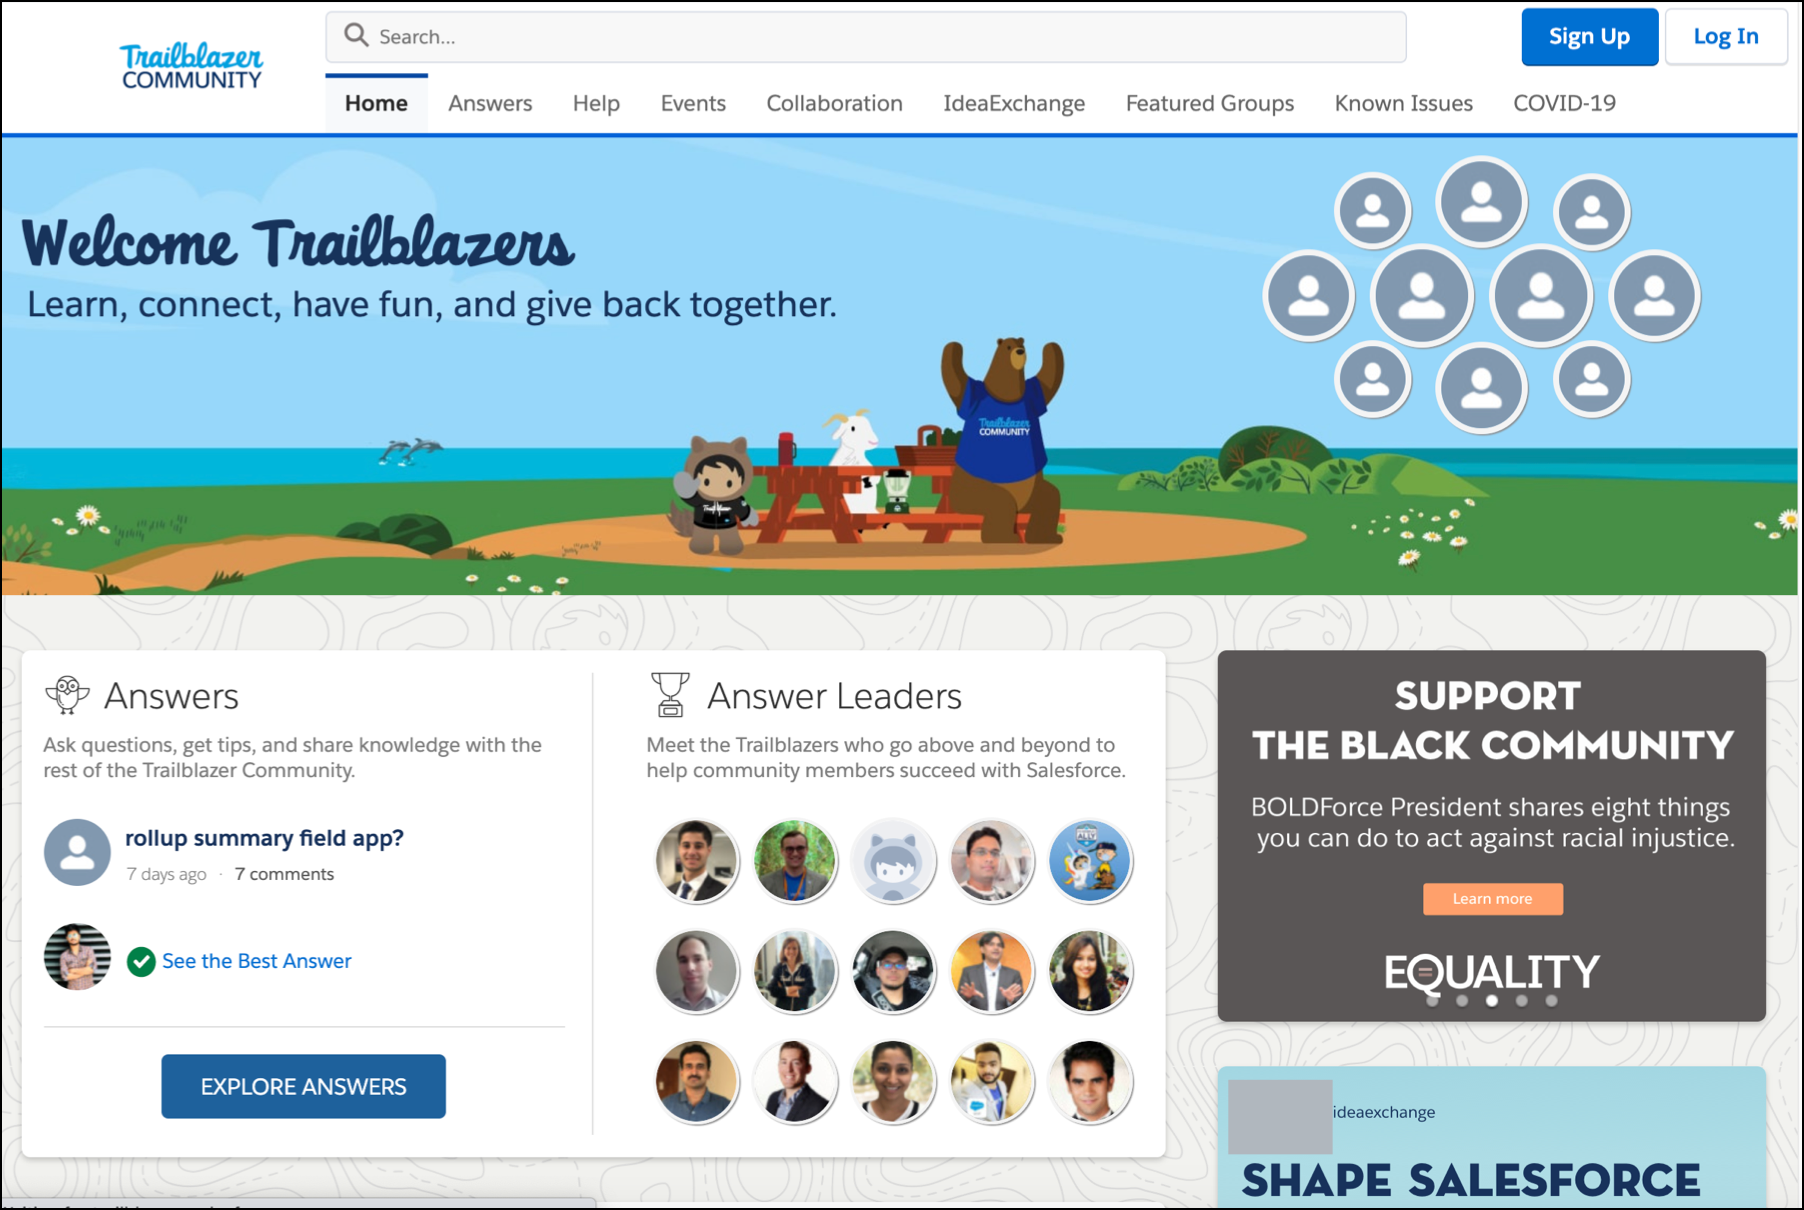 Join the Salesforce Trailblazer Community to access current information, collaborate with others, and suggest new features.